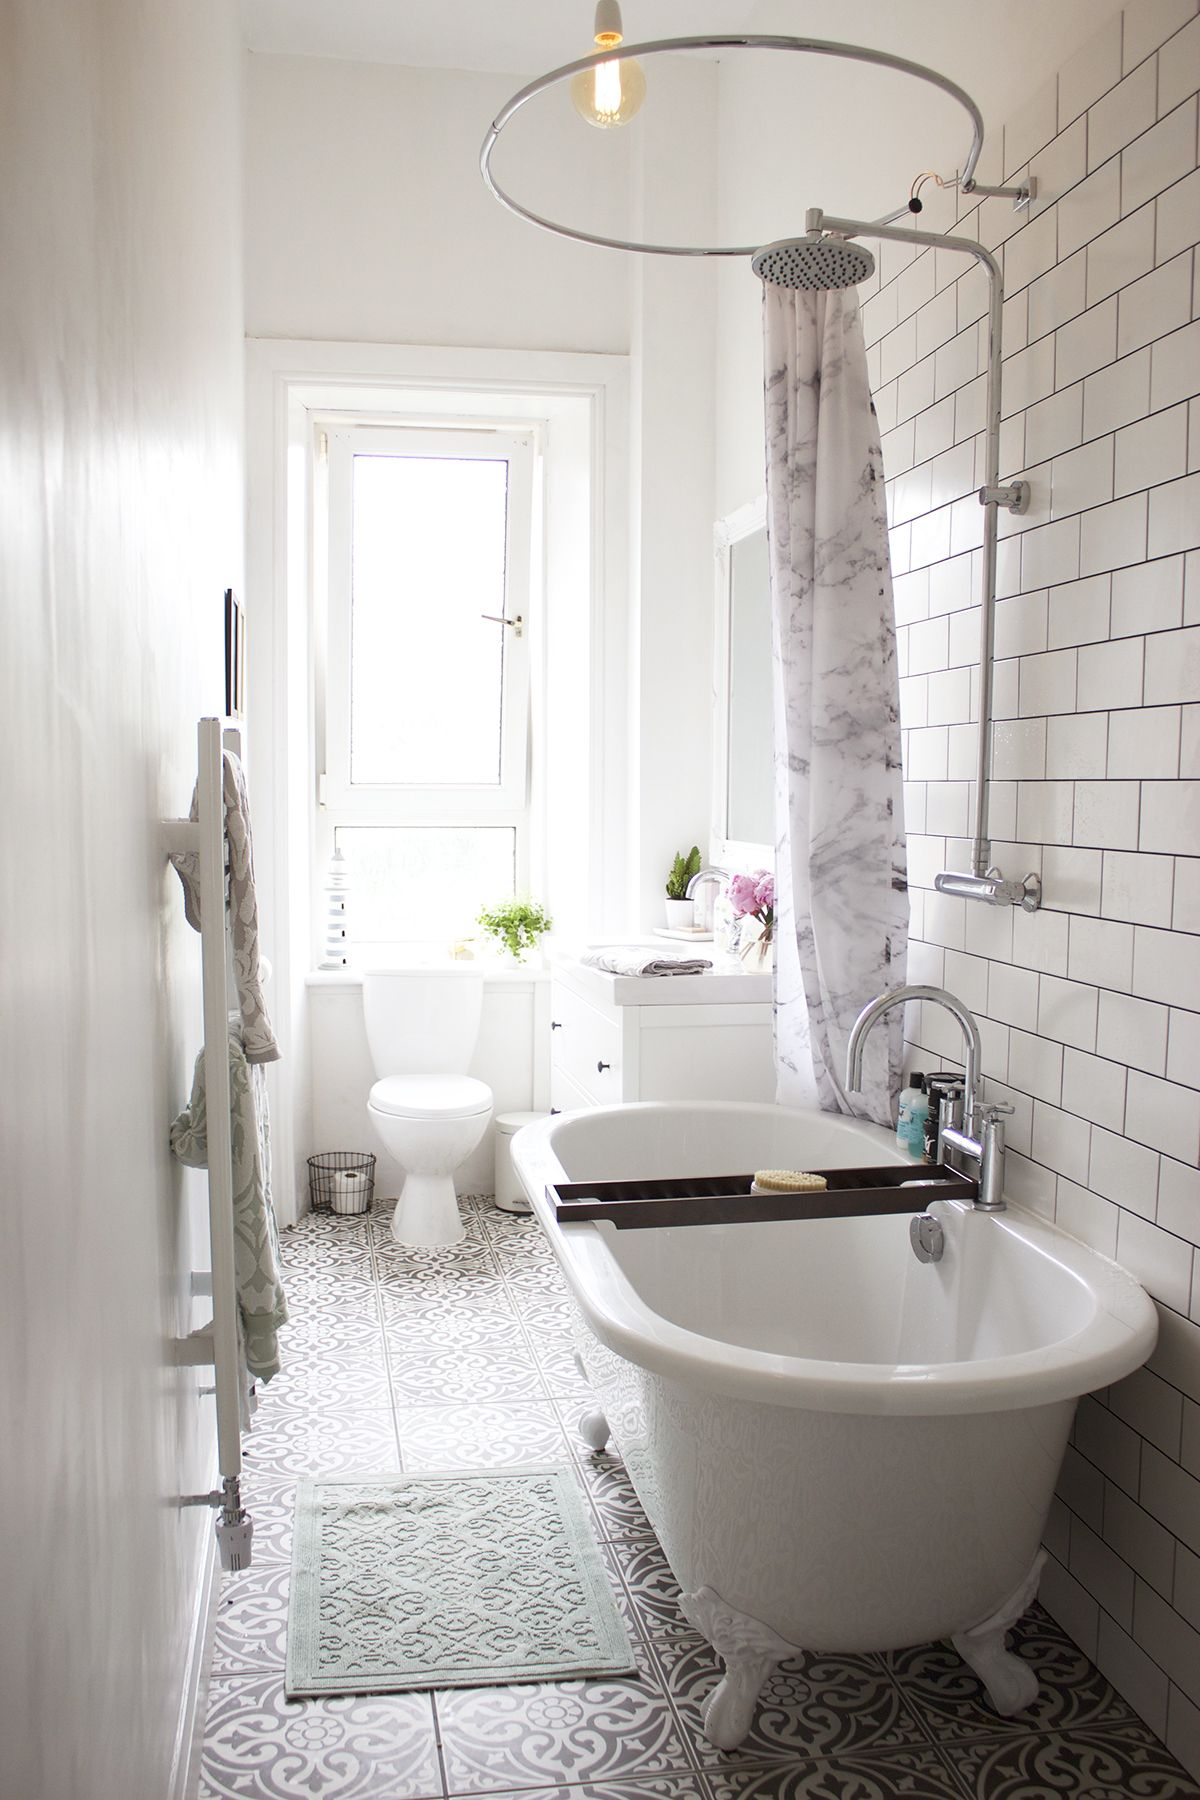 10 gorgeous bathroom makeovers - Small Bathroom Inspiration